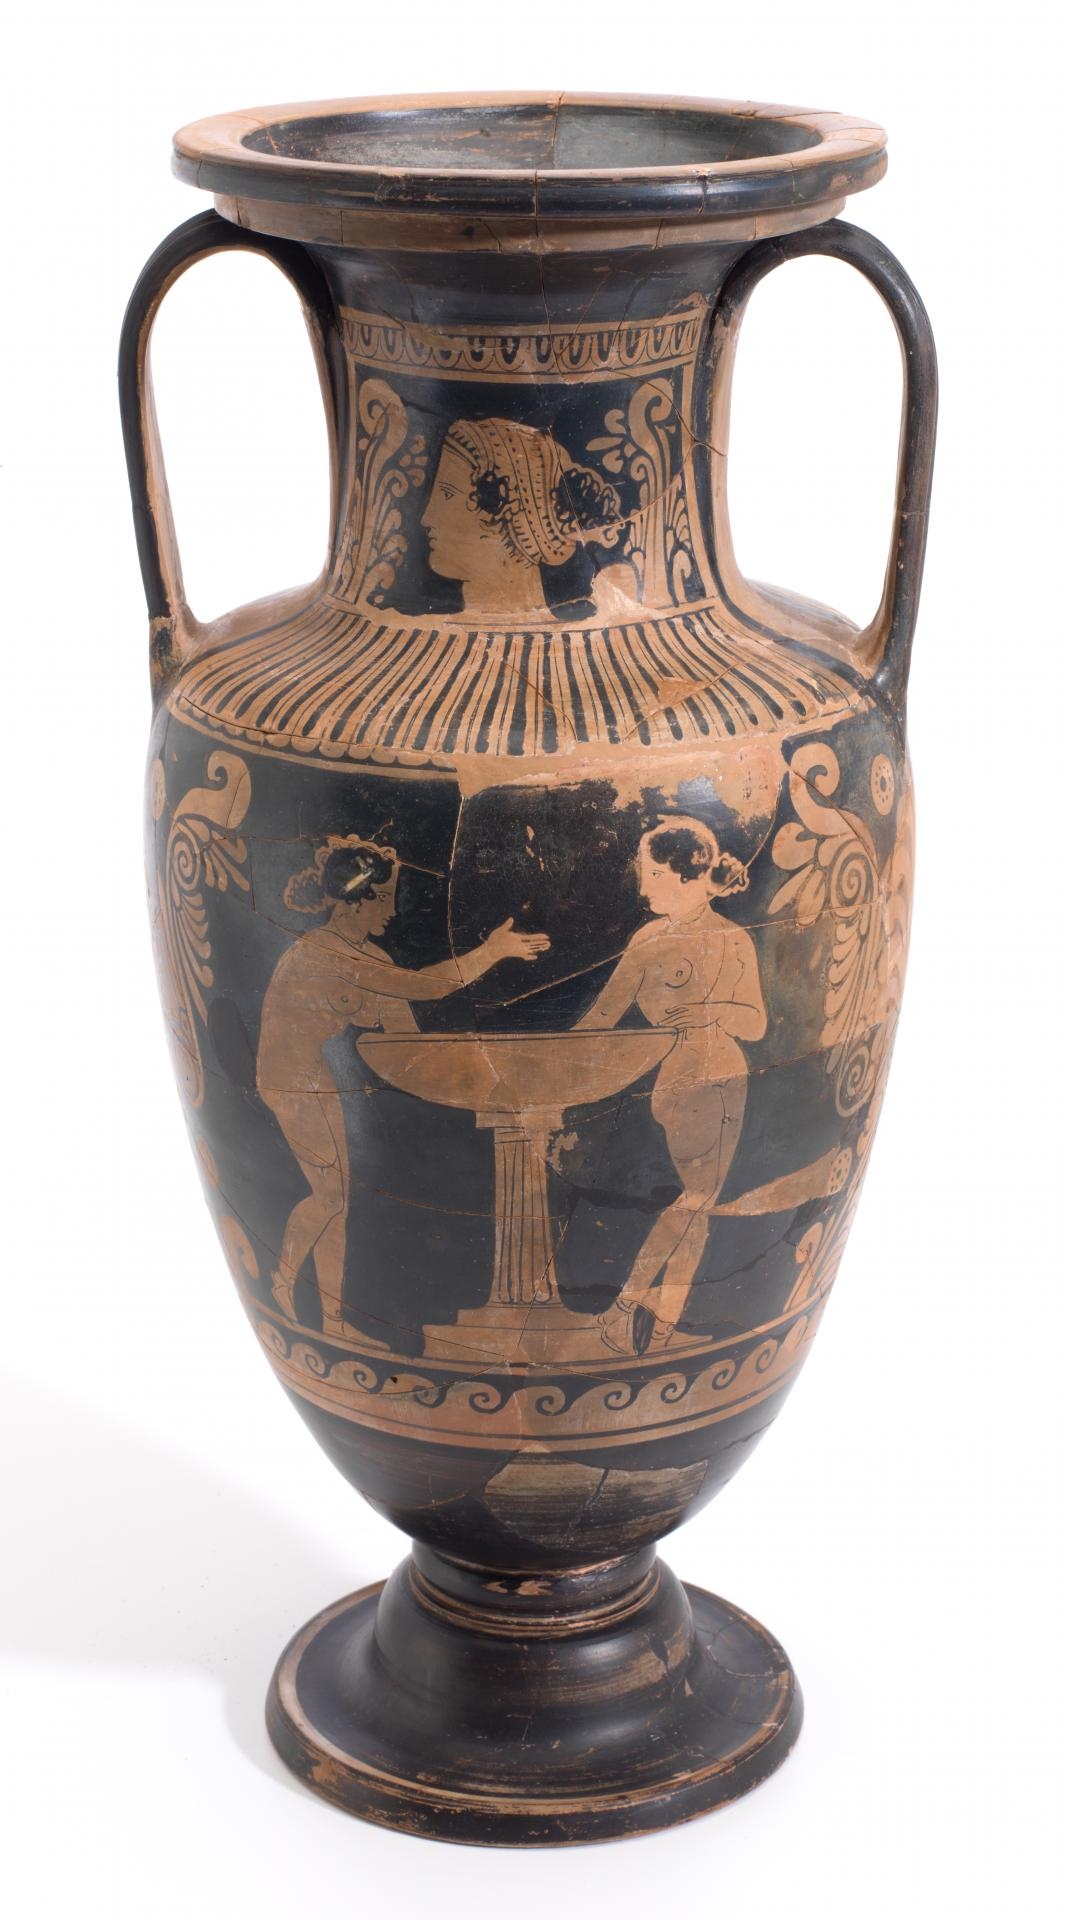 Neck amphora (Sicilian red-figure ware)